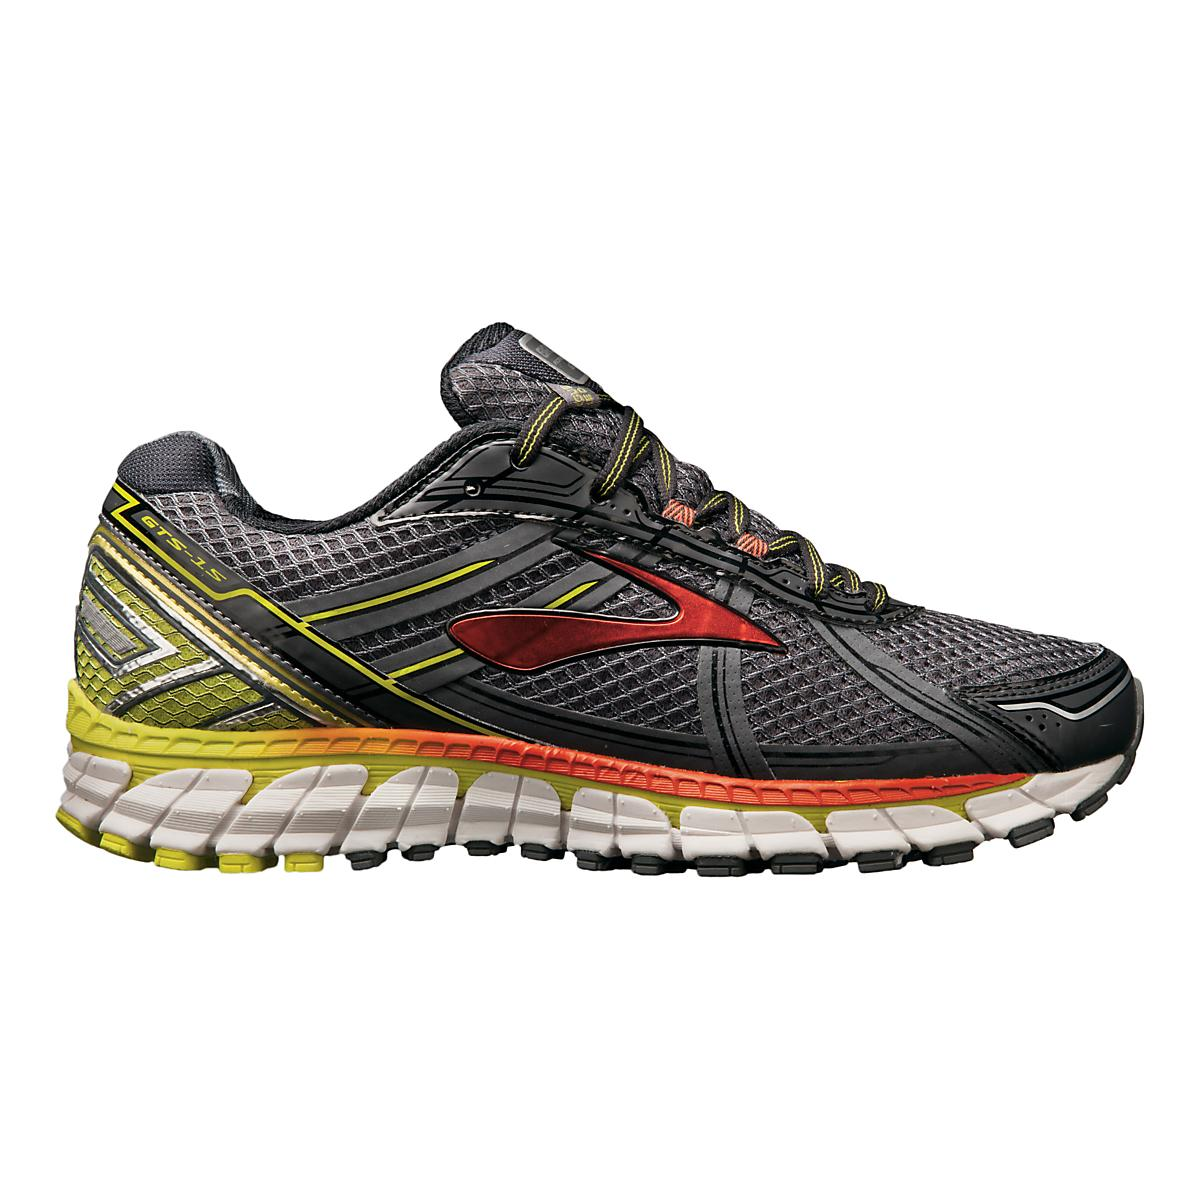 544bb2ae1ca Mens Brooks Adrenaline GTS 15 Running Shoe at Road Runner Sports